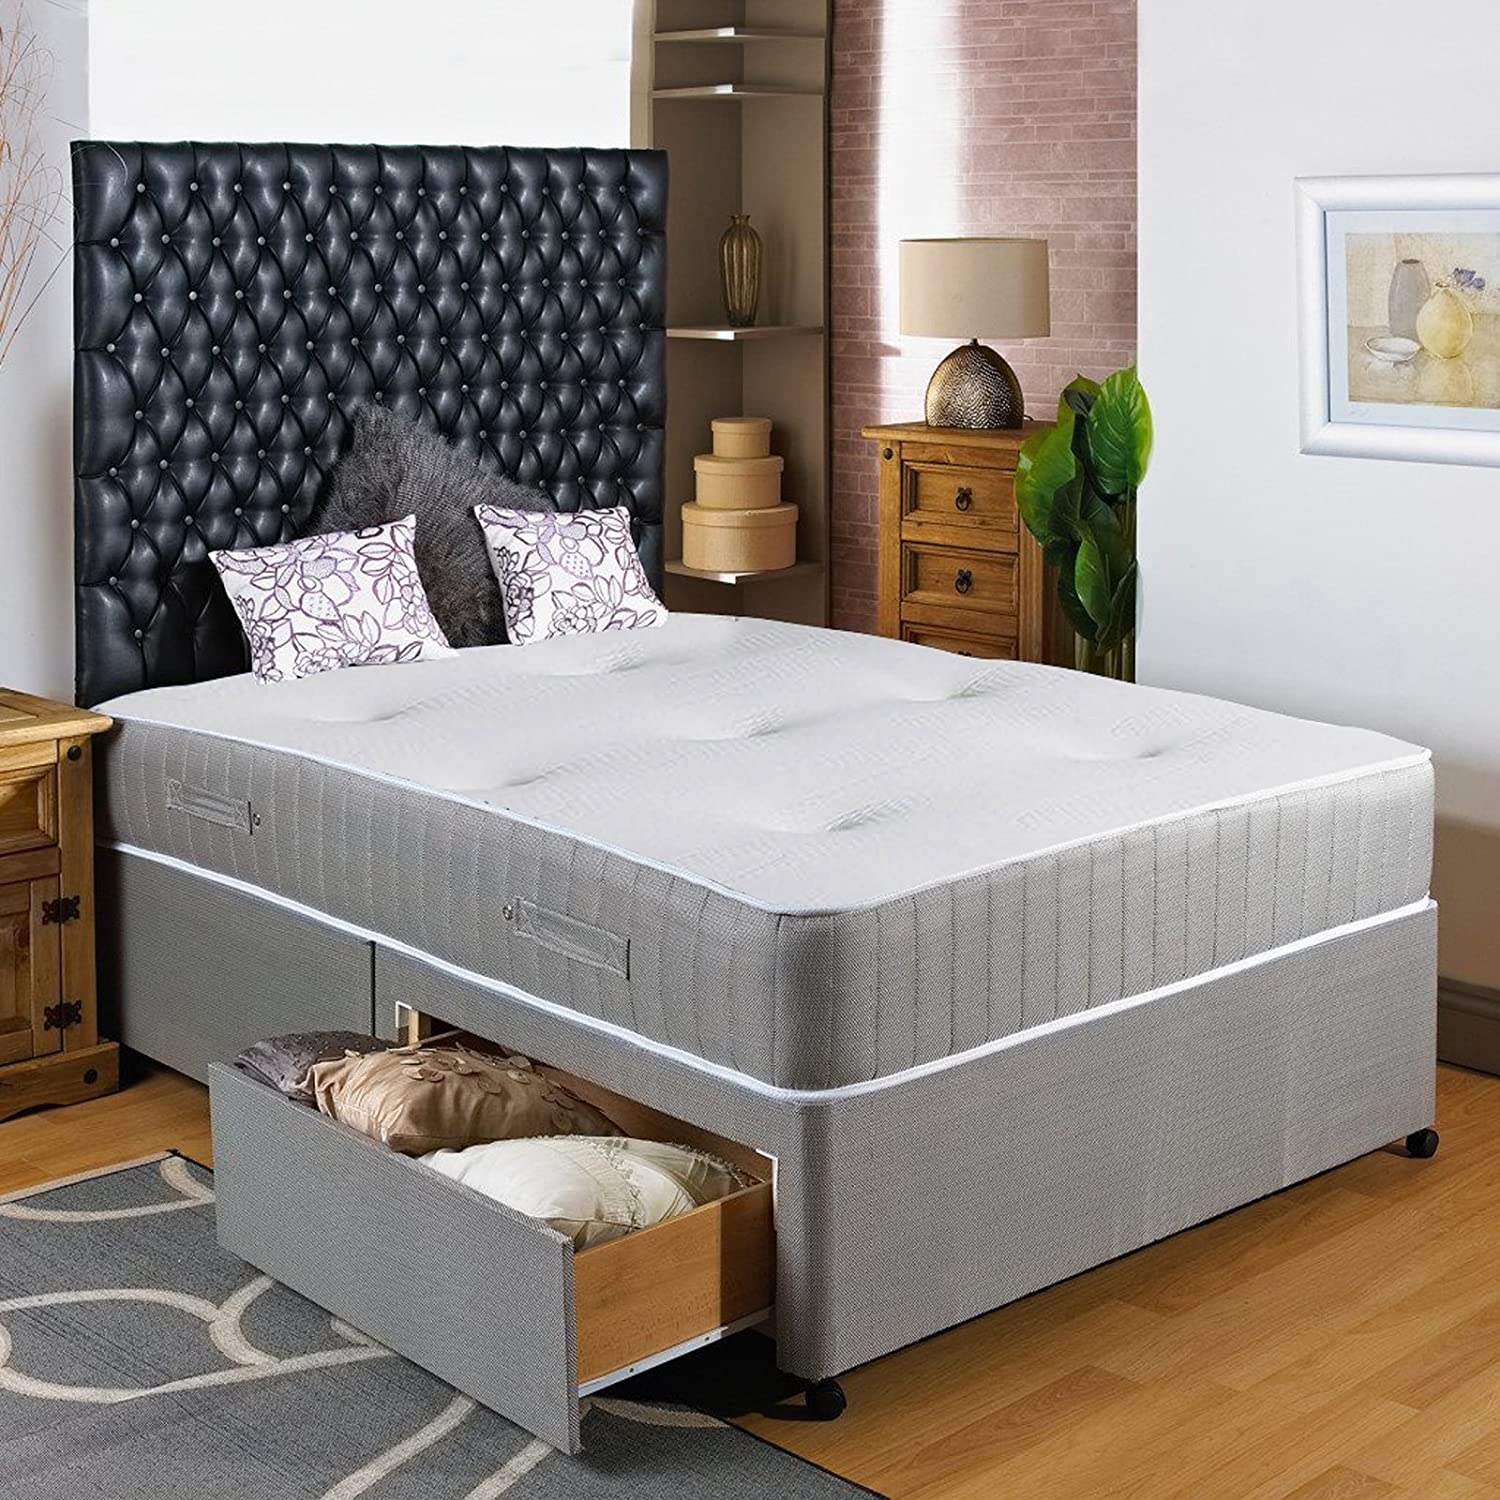 Hf4You 3Ft6 Large Single Divan Bed - 2 Drawers - Same Side - No Headboard